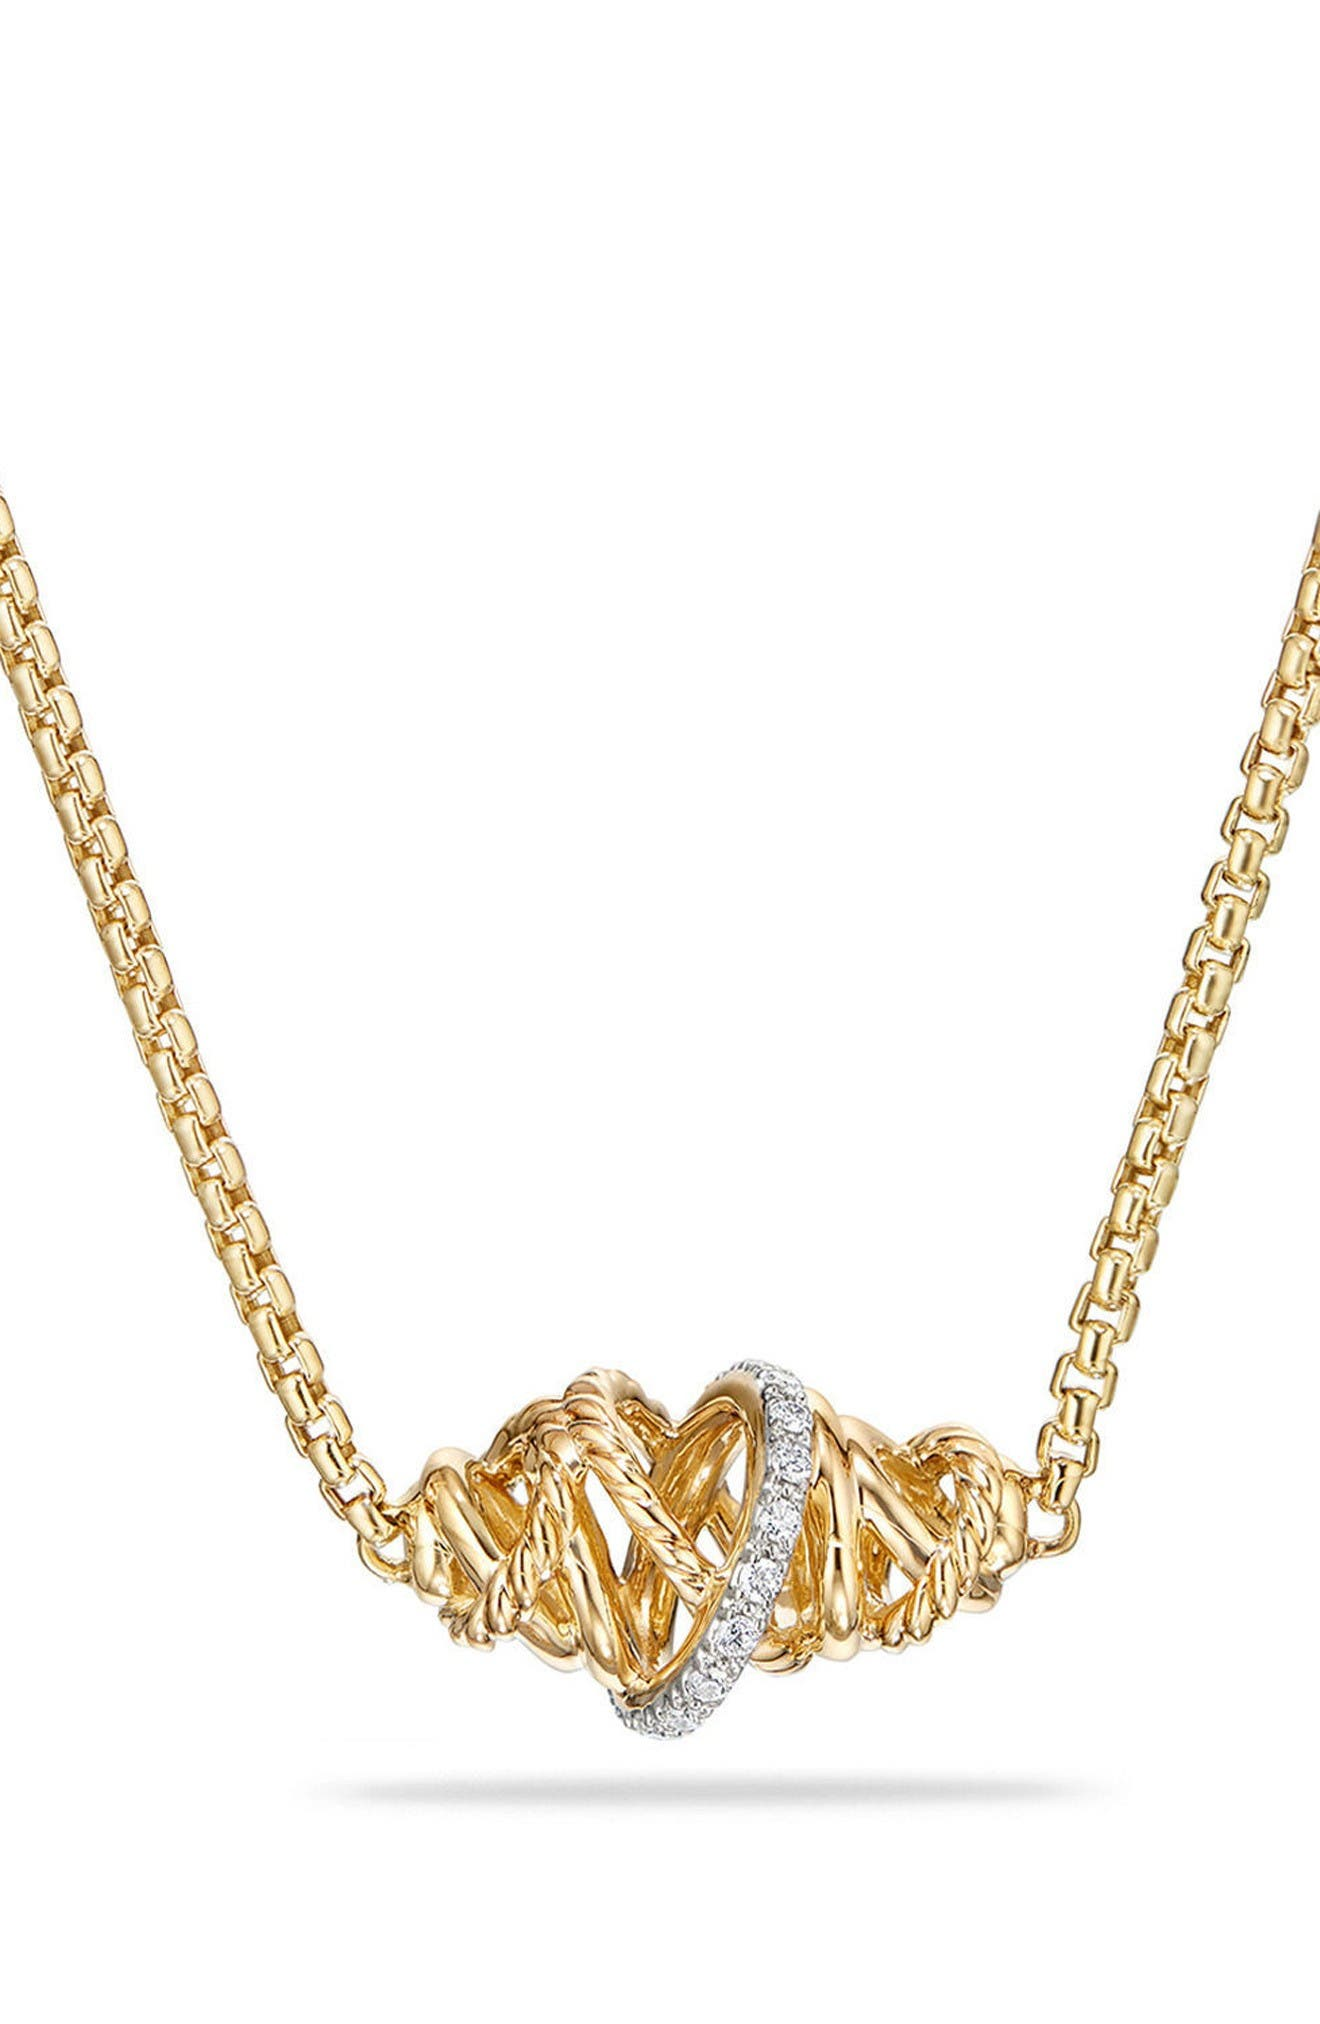 Main Image - David Yurman Crossover Station Necklace in 18K Gold with Diamonds